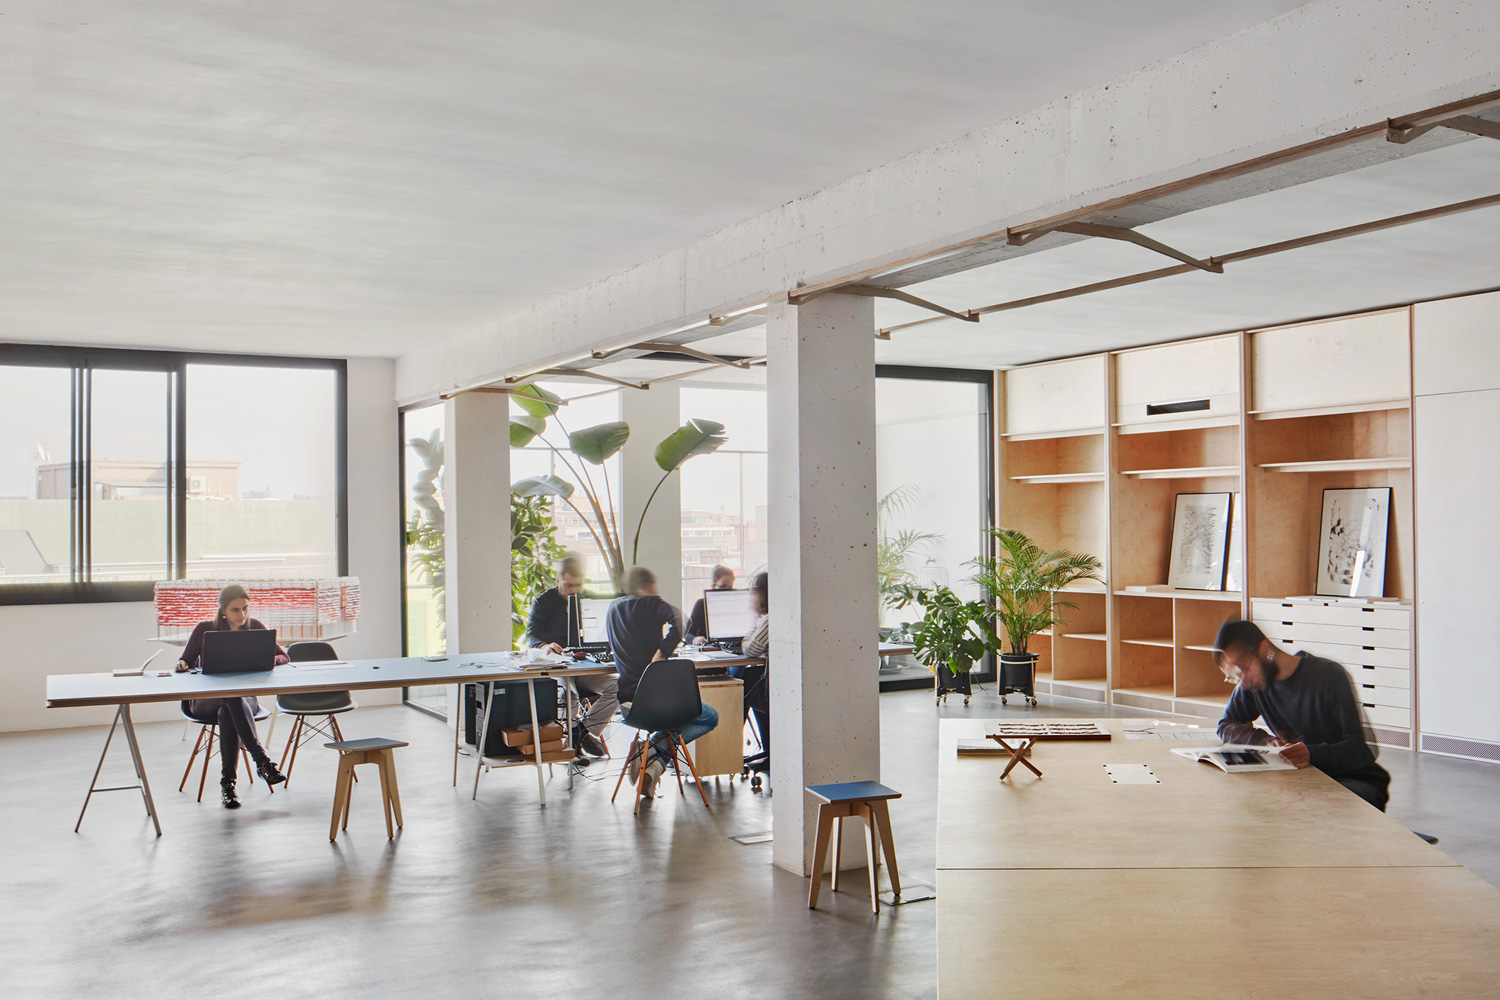 coworking space architecture